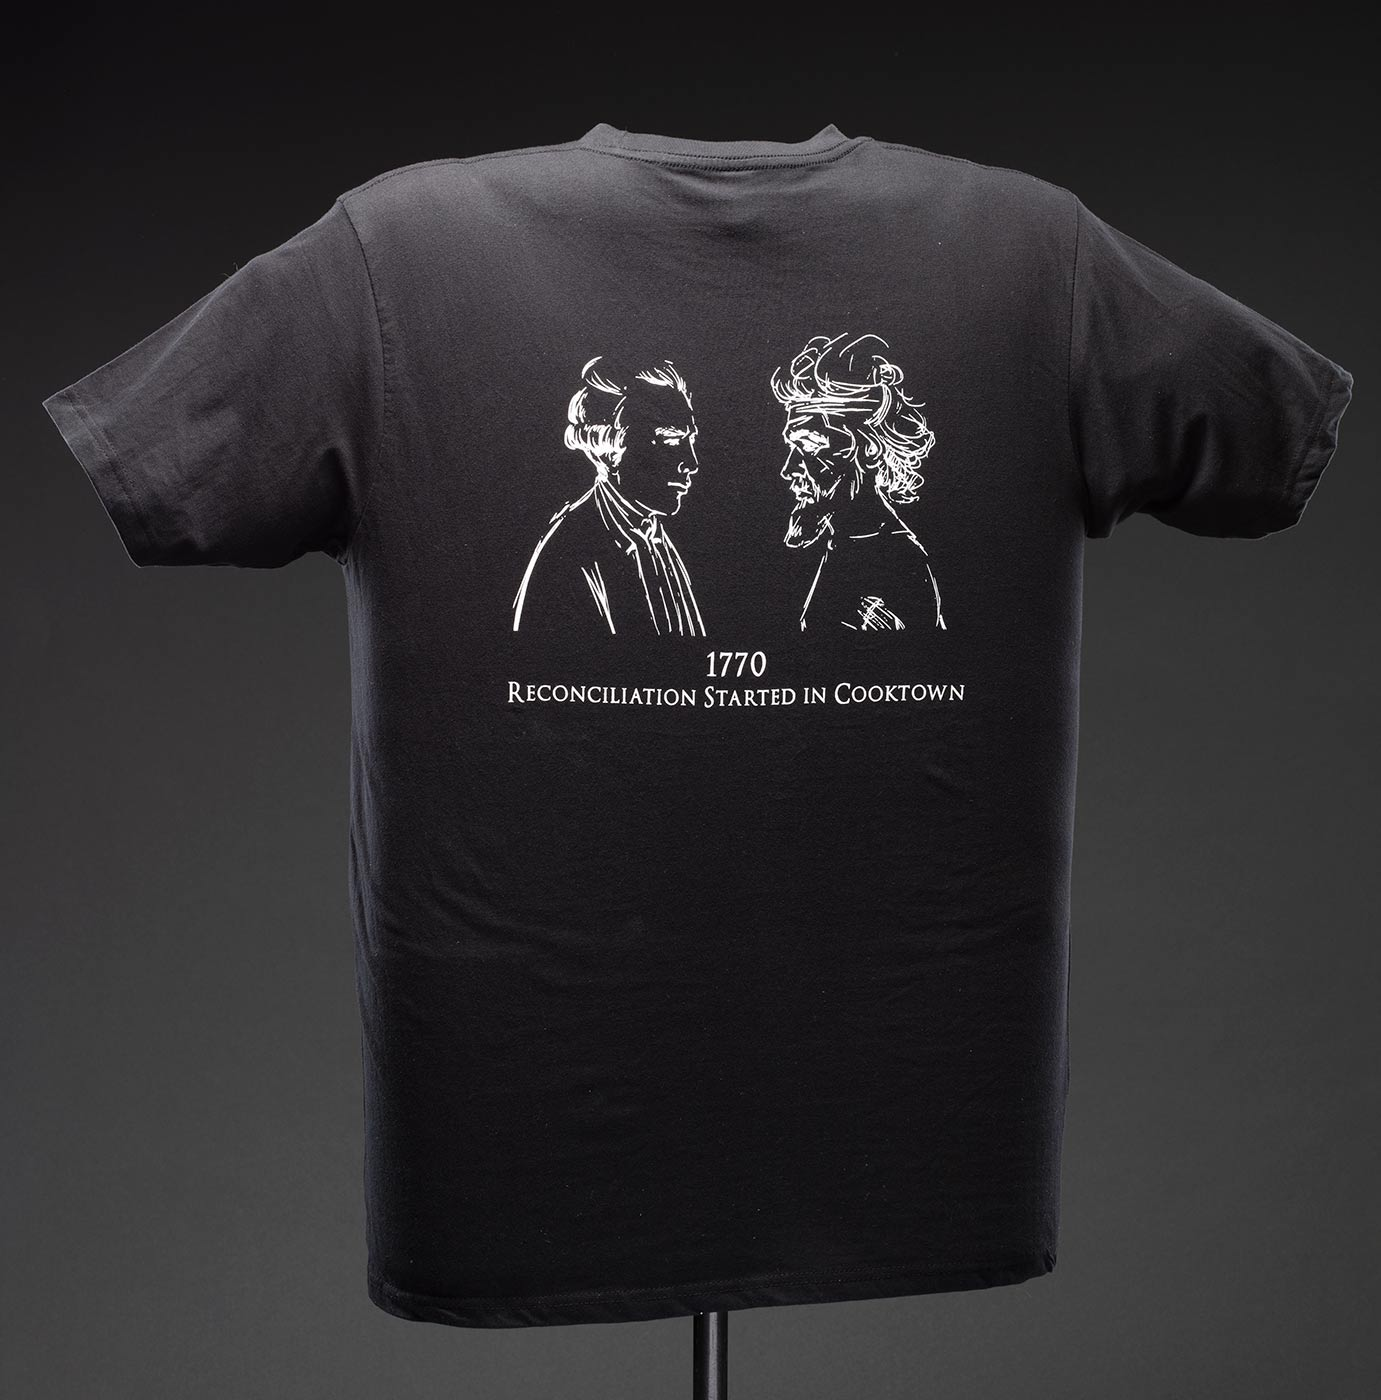 A black t-shirt with white text on the front that reads ?Hopevale / Arts & Culture Centre?. On the reverse there is a white printed illustration of two men facing each other with ?1770 / RECONCILIATION STARTED IN COOKTOWN? printed beneath it.